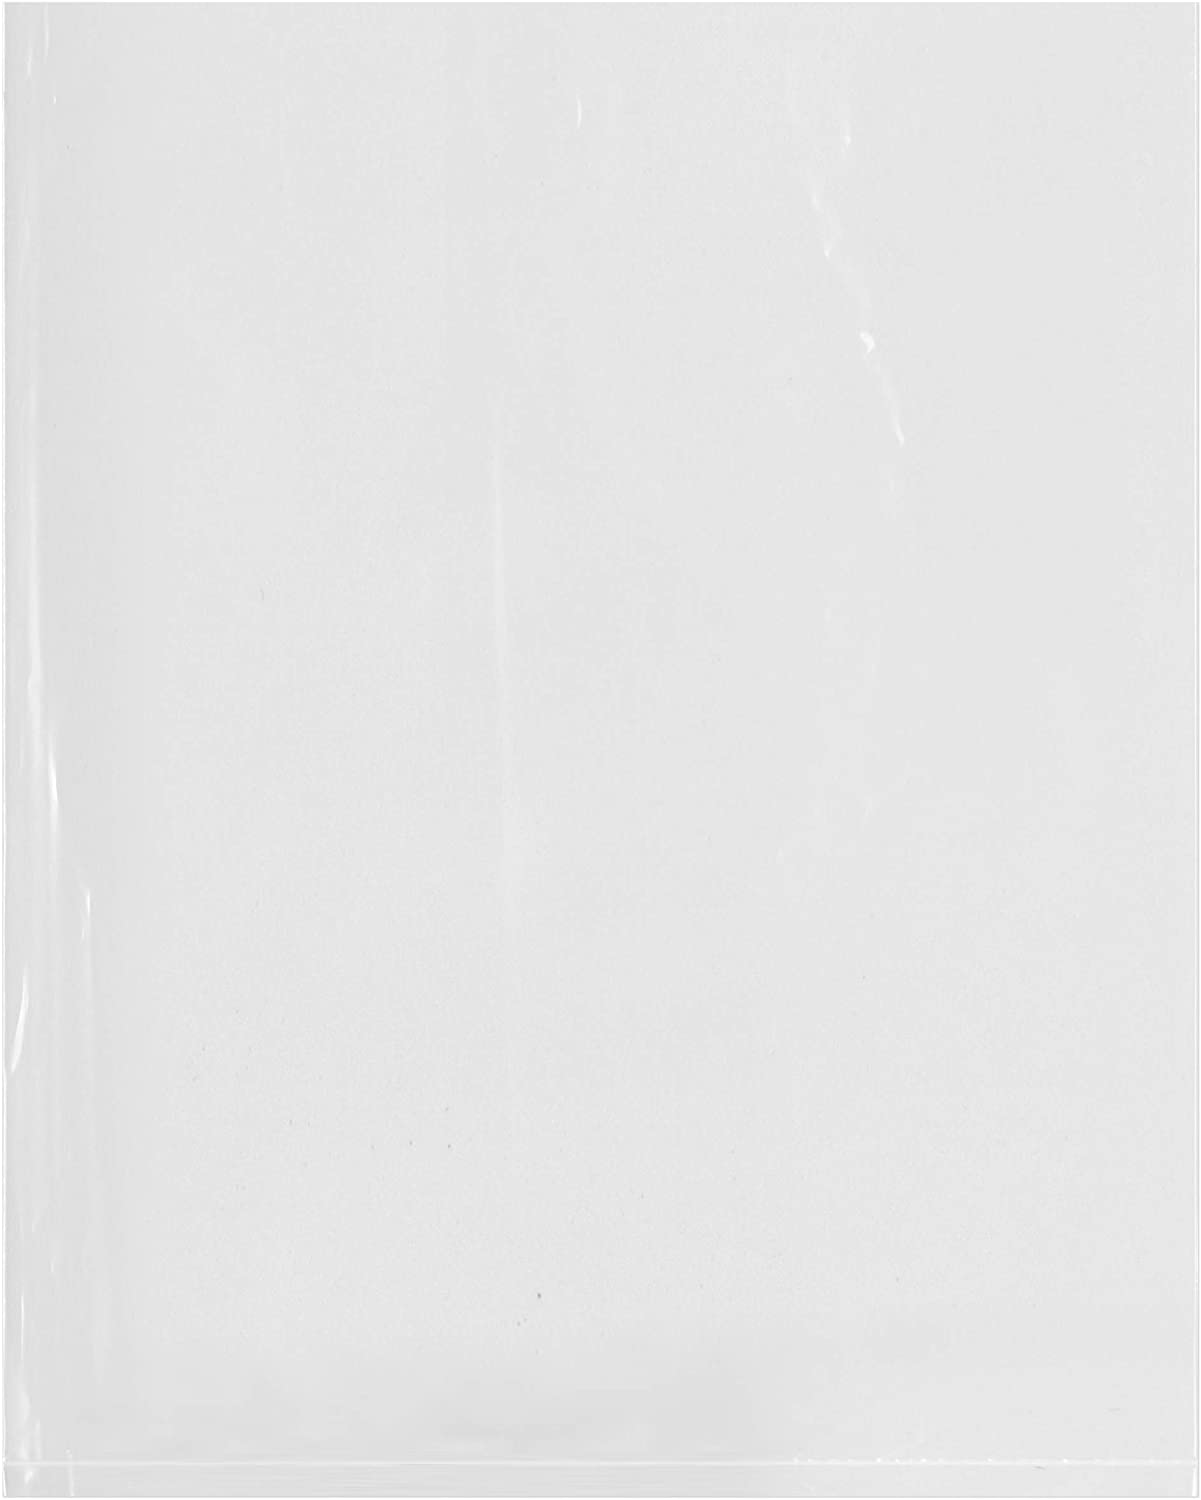 Plymor Flat Open Clear Plastic Poly Bags, 6 Mil, 8